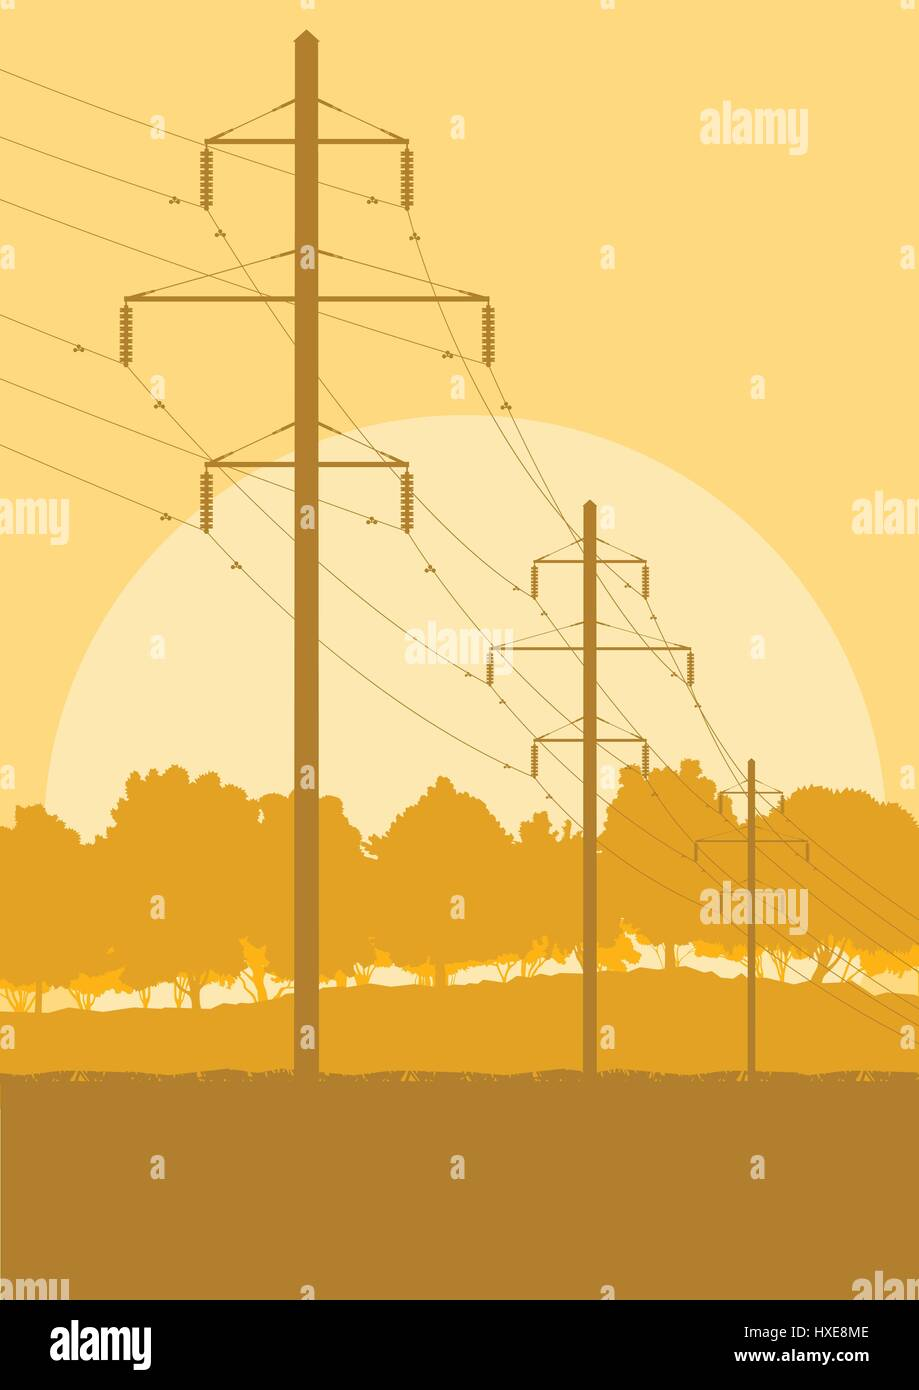 hight resolution of energy distribution high voltage power line tower sunset landscape with wires and trees vector background